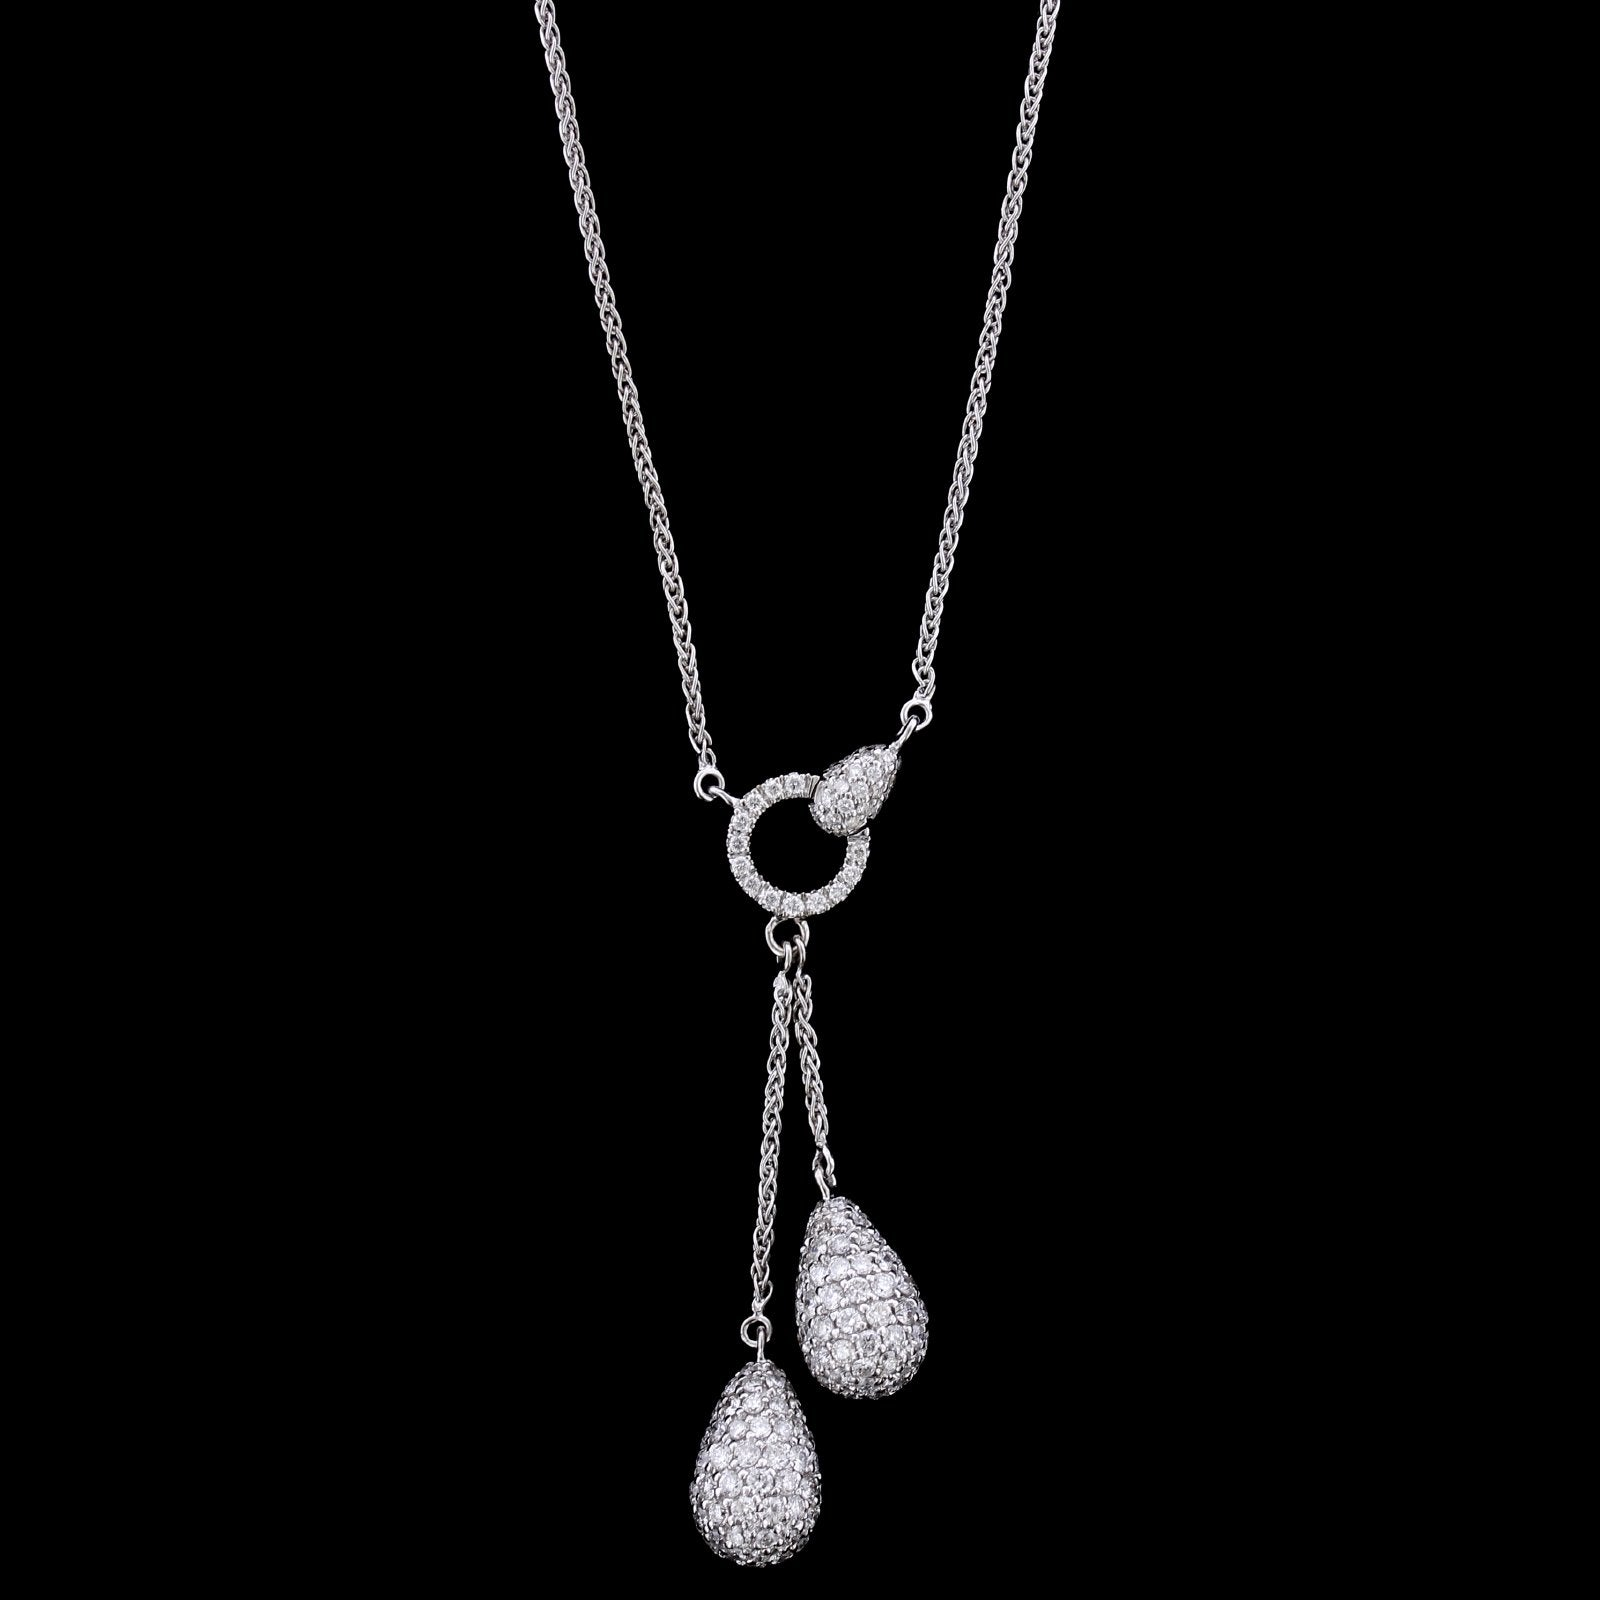 18K White Gold Estate Diamond Lariat Neckace